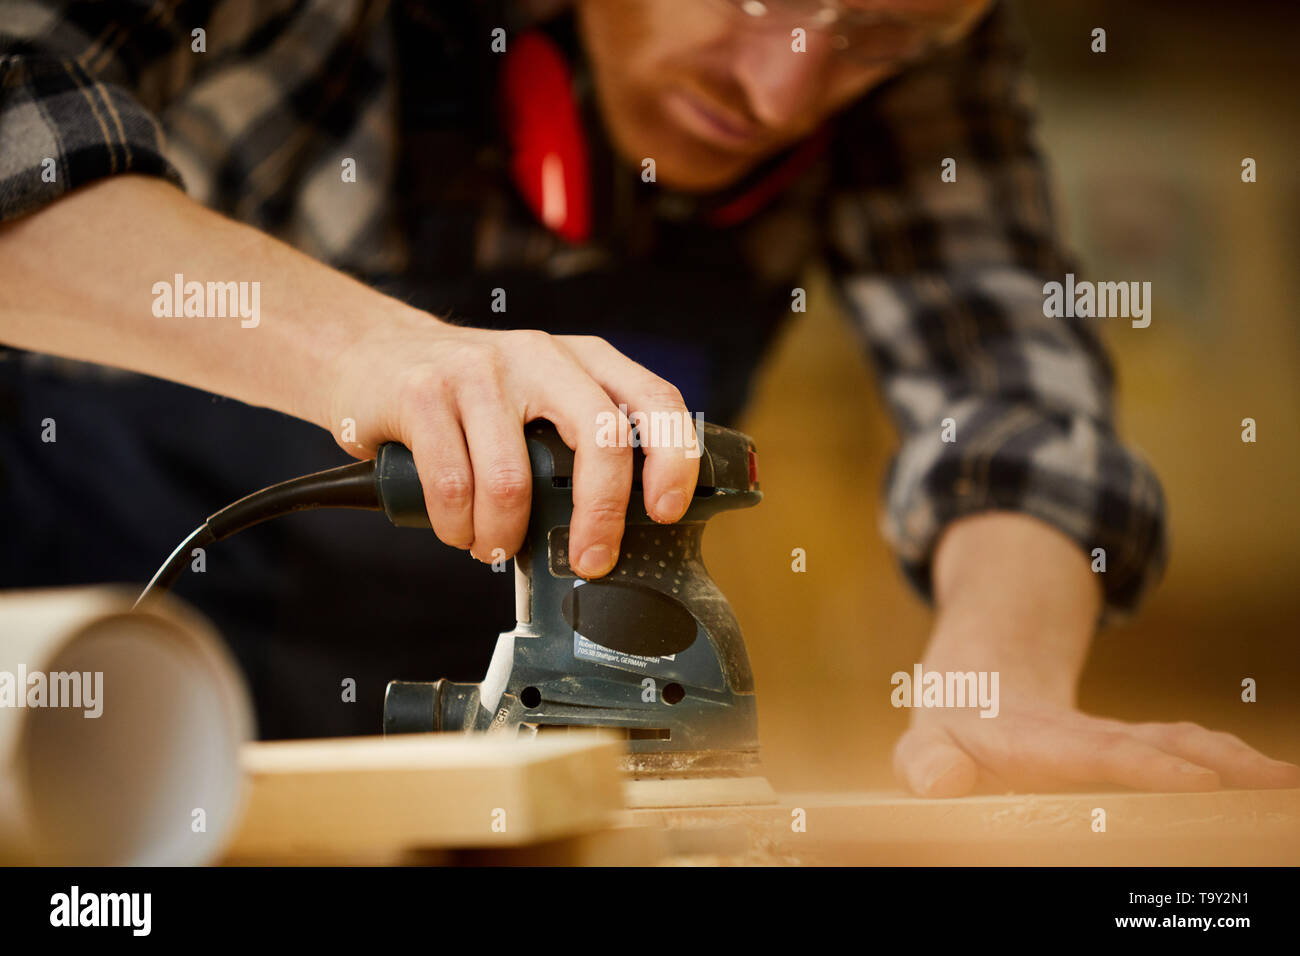 Mid section portrait of contemporary carpenter polishing wood while working in sunlight, copy space - Stock Image